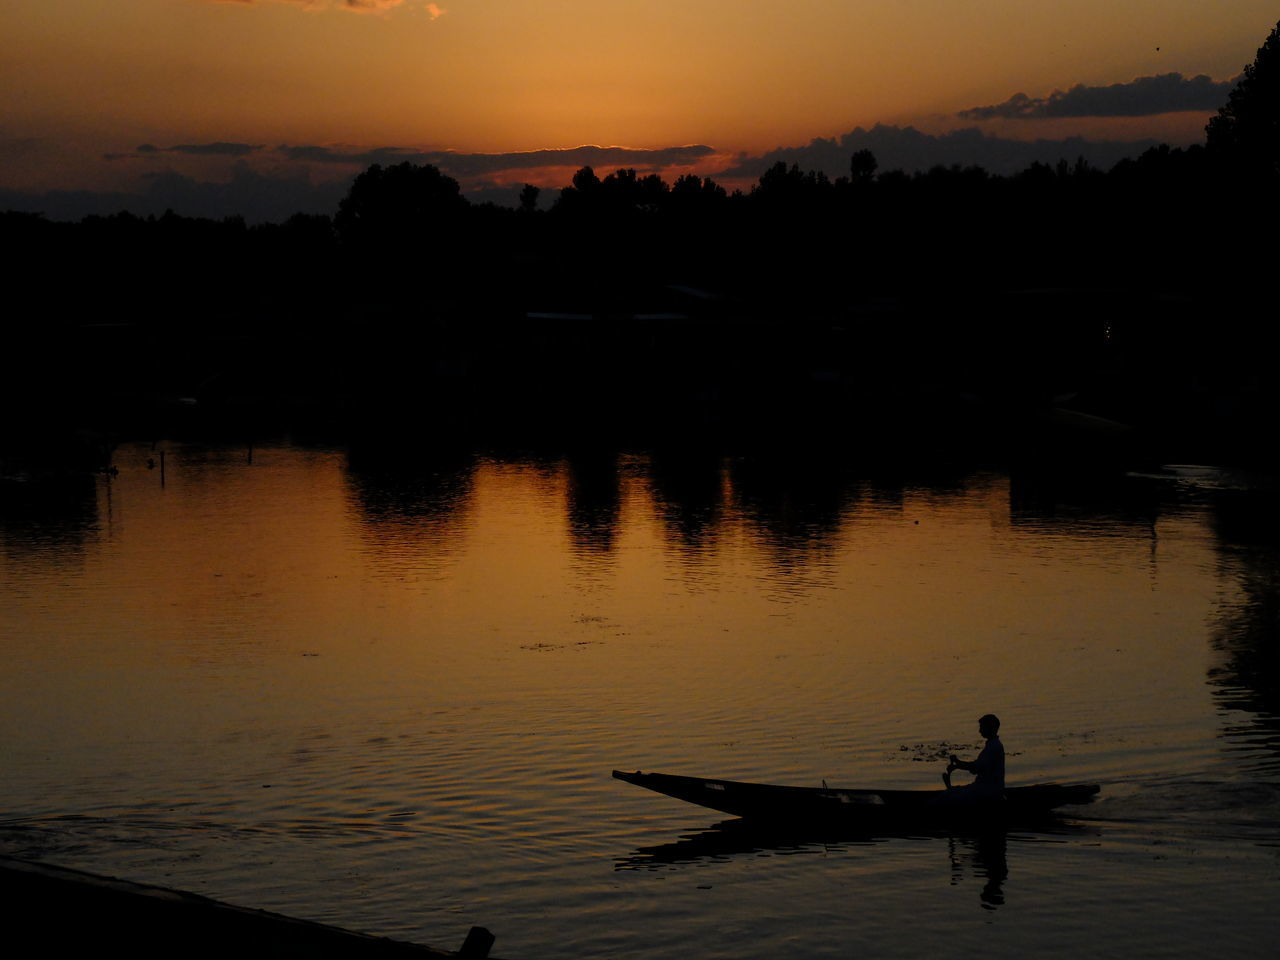 Adult Adults Only Beauty In Nature Day Lake Men Nature Nautical Vessel One Man Only One Person Only Men Orange Color Outdoors People Real People Reflection Rowing Scenics Silhouette Sky Srinagar Kashmir Sunset Tranquil Scene Tranquility Water